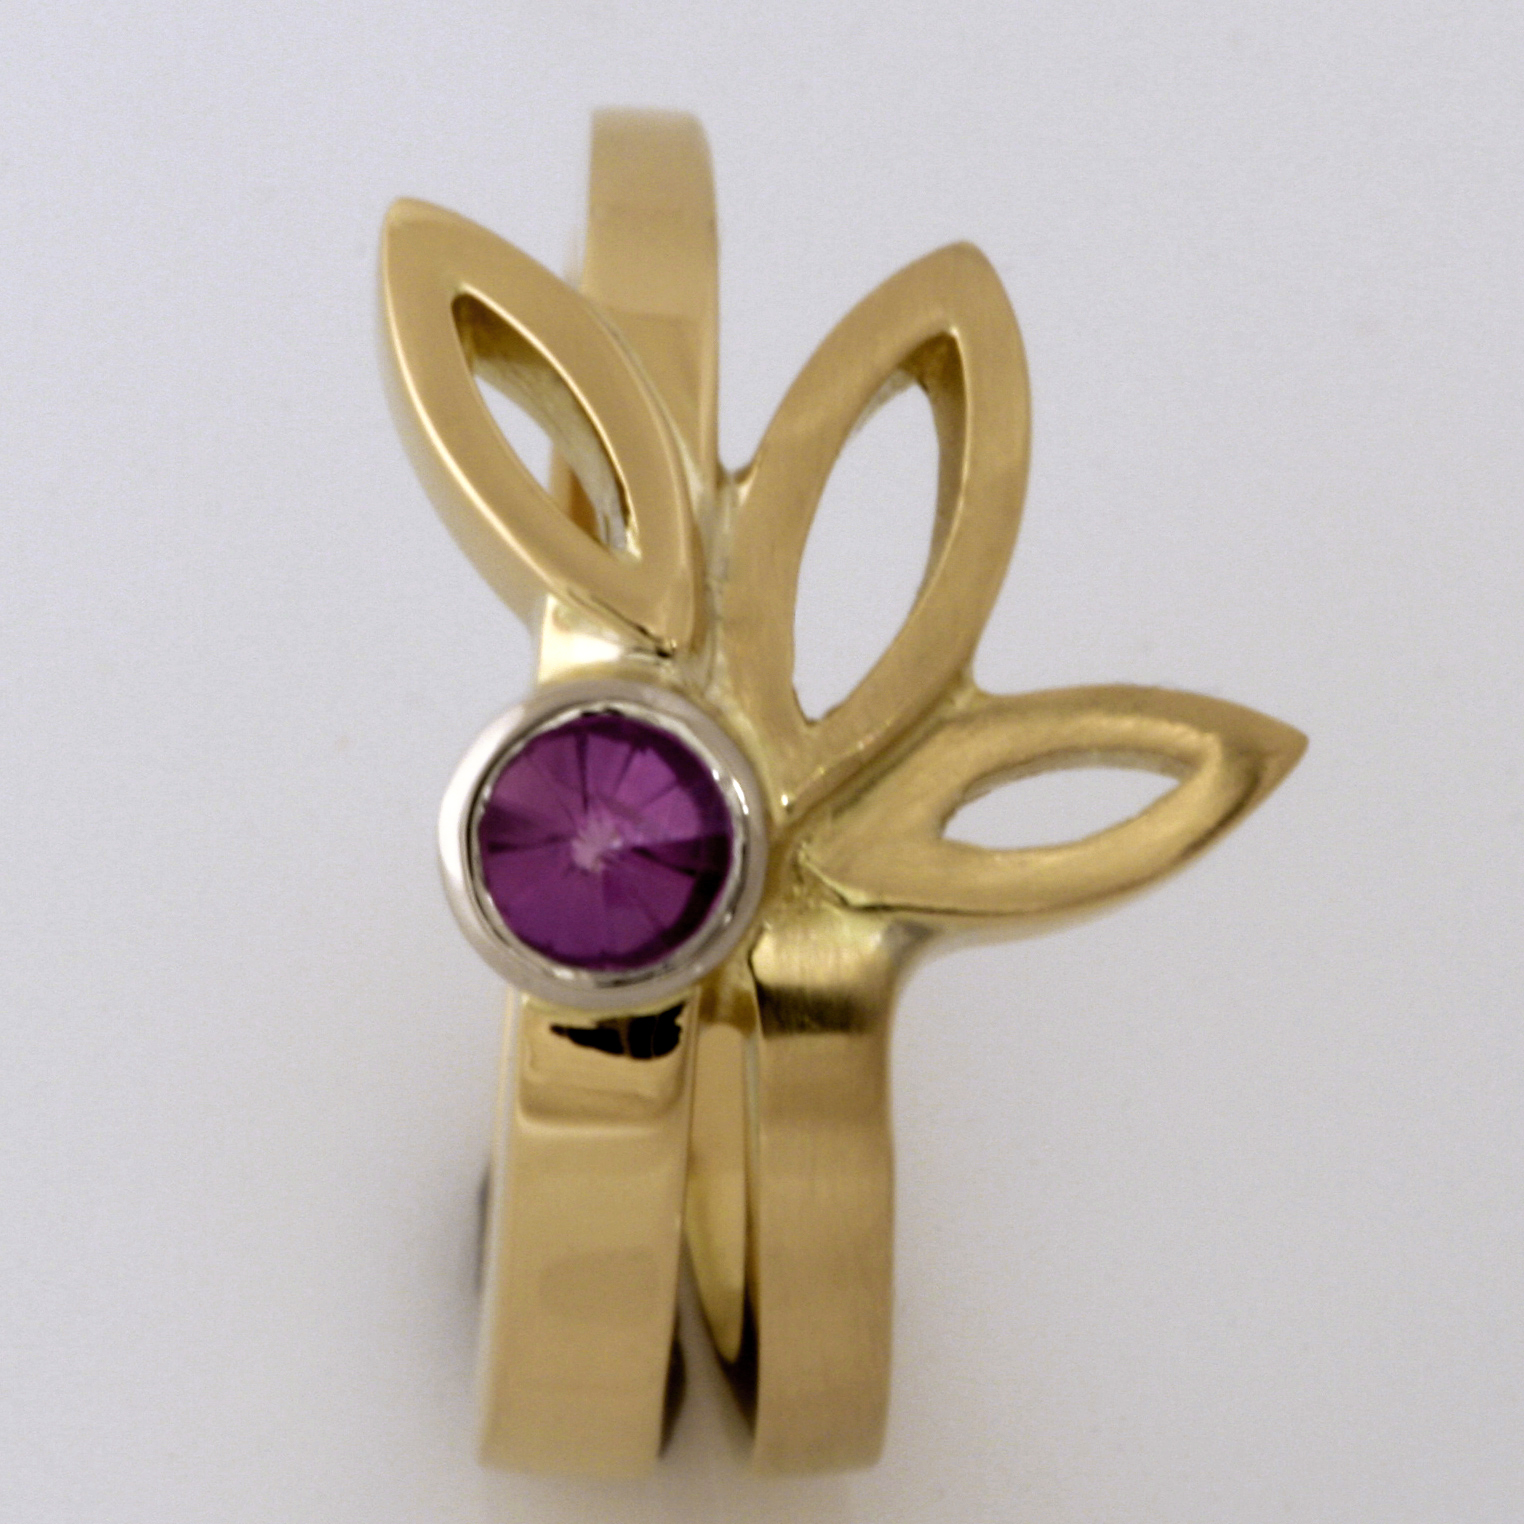 Handmade ladies 18ct yellow gold pink 'Spirit' cut sapphire ring